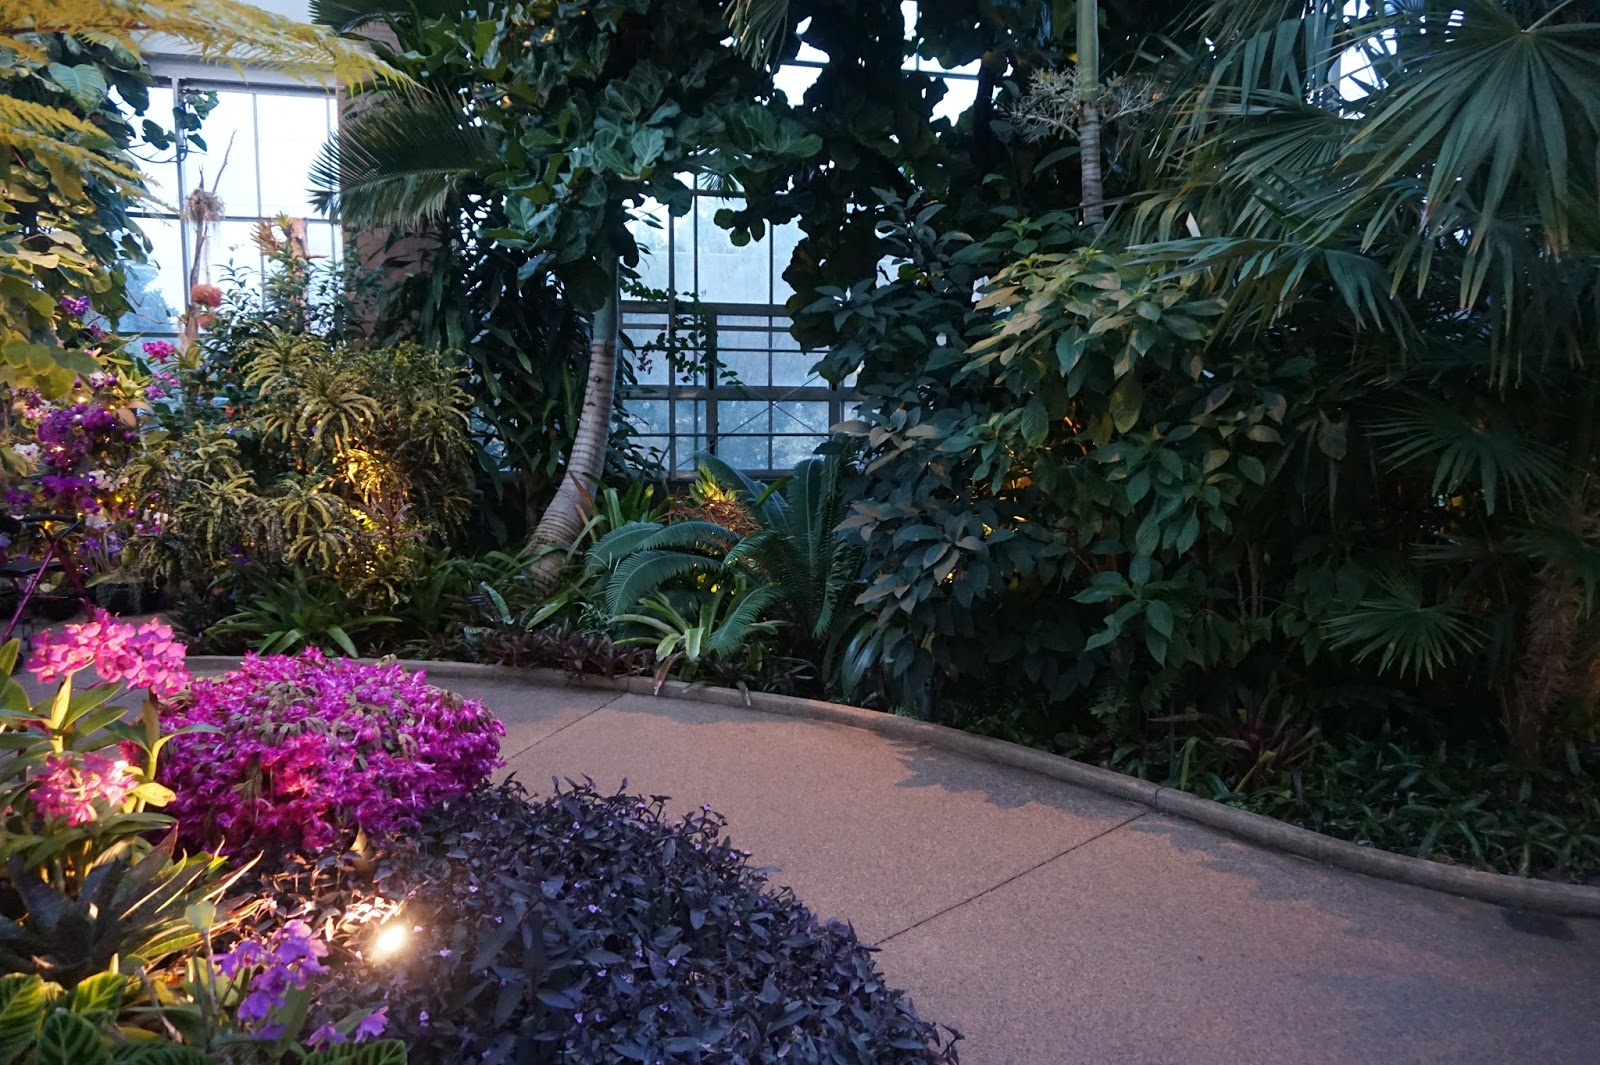 Botanical Garden Opens With Holiday Light